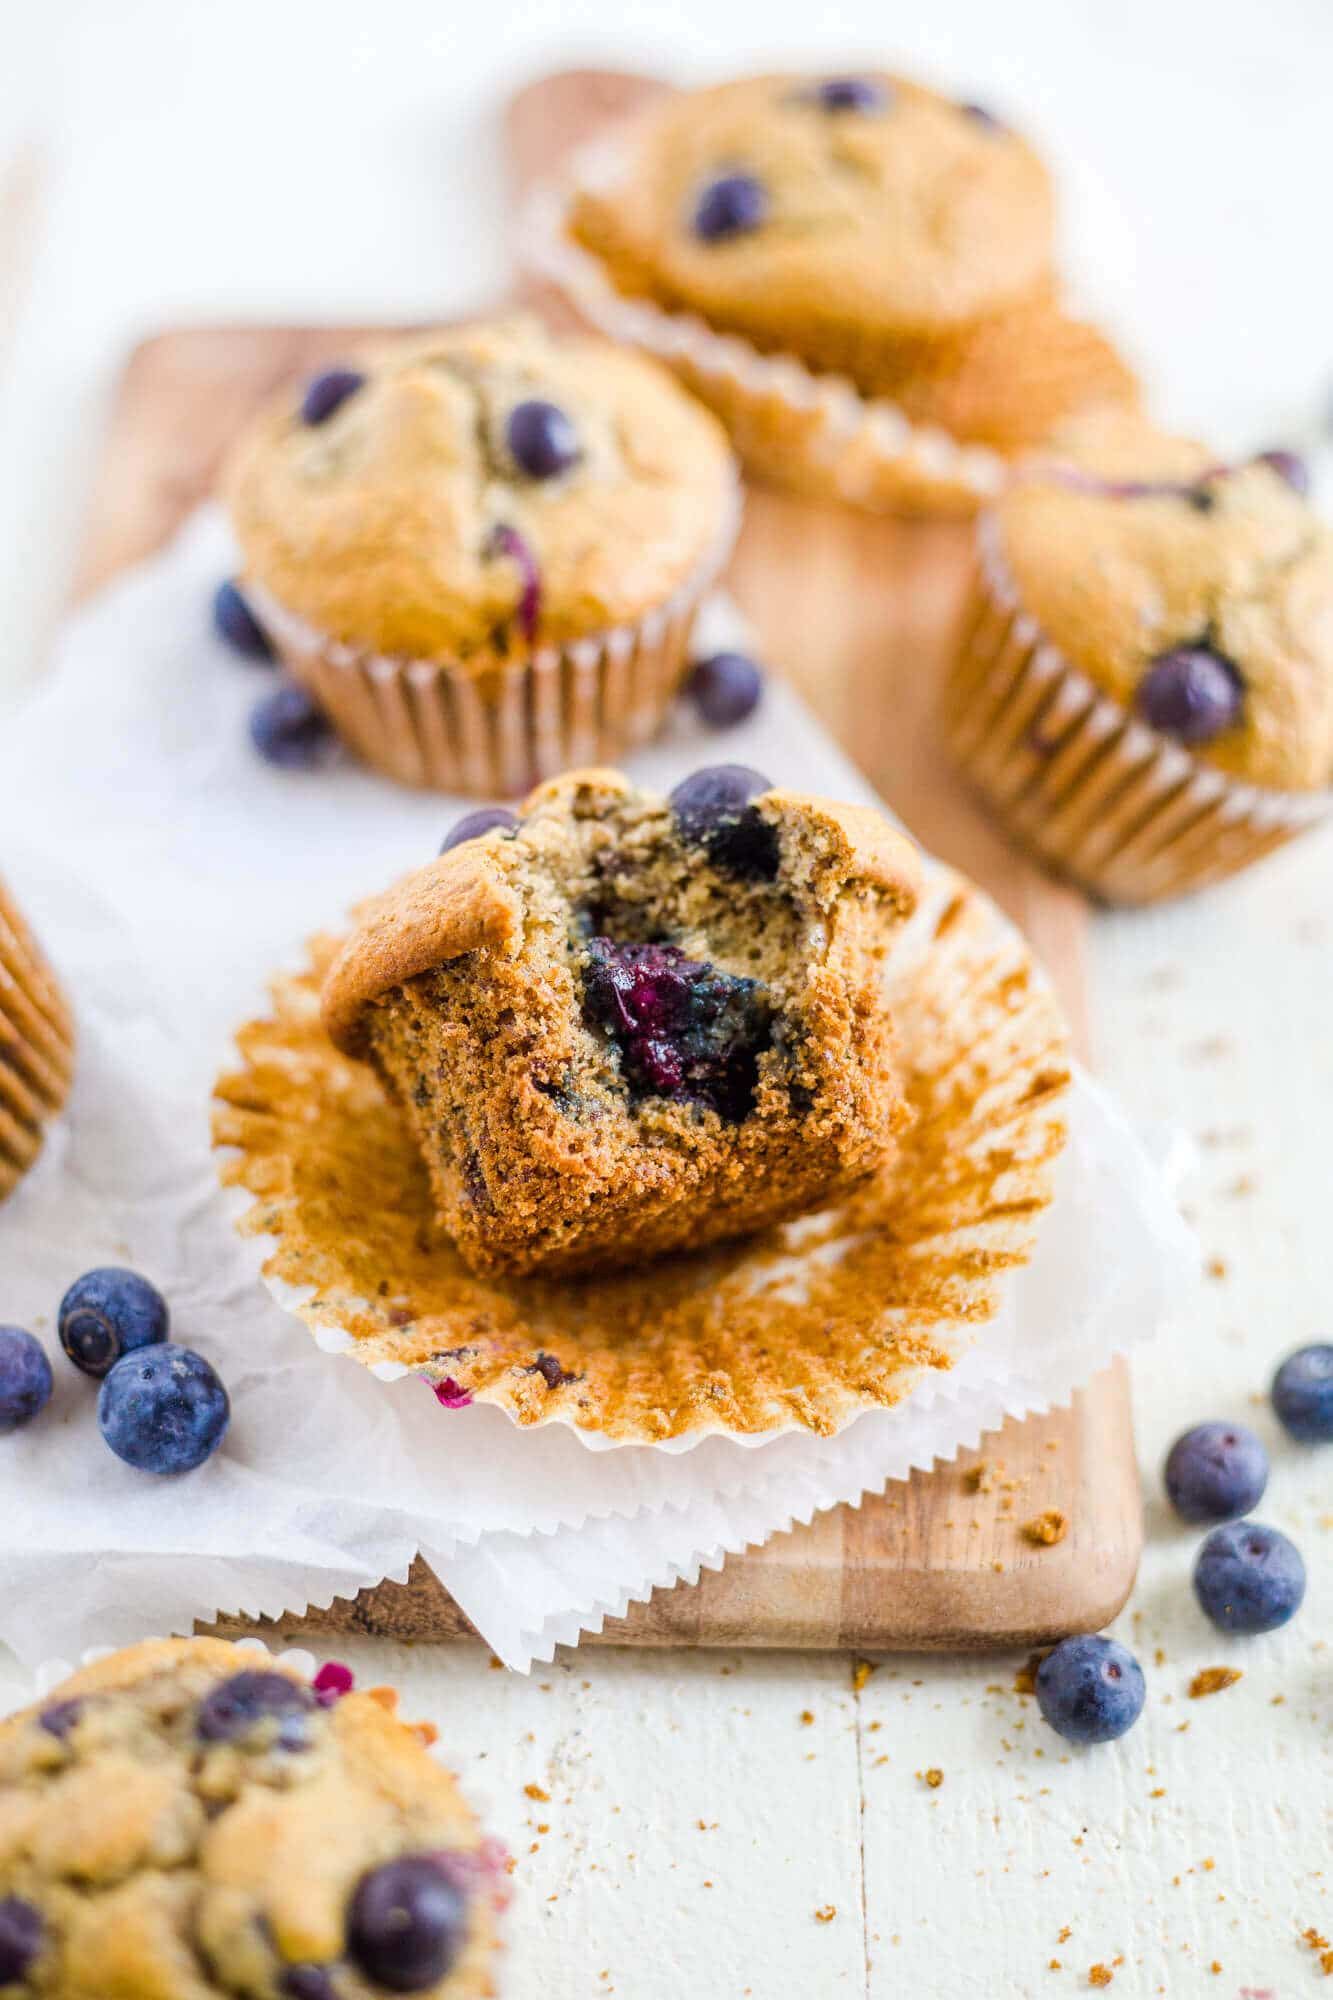 blueberry lactation muffin on the table with a bite taken out of it